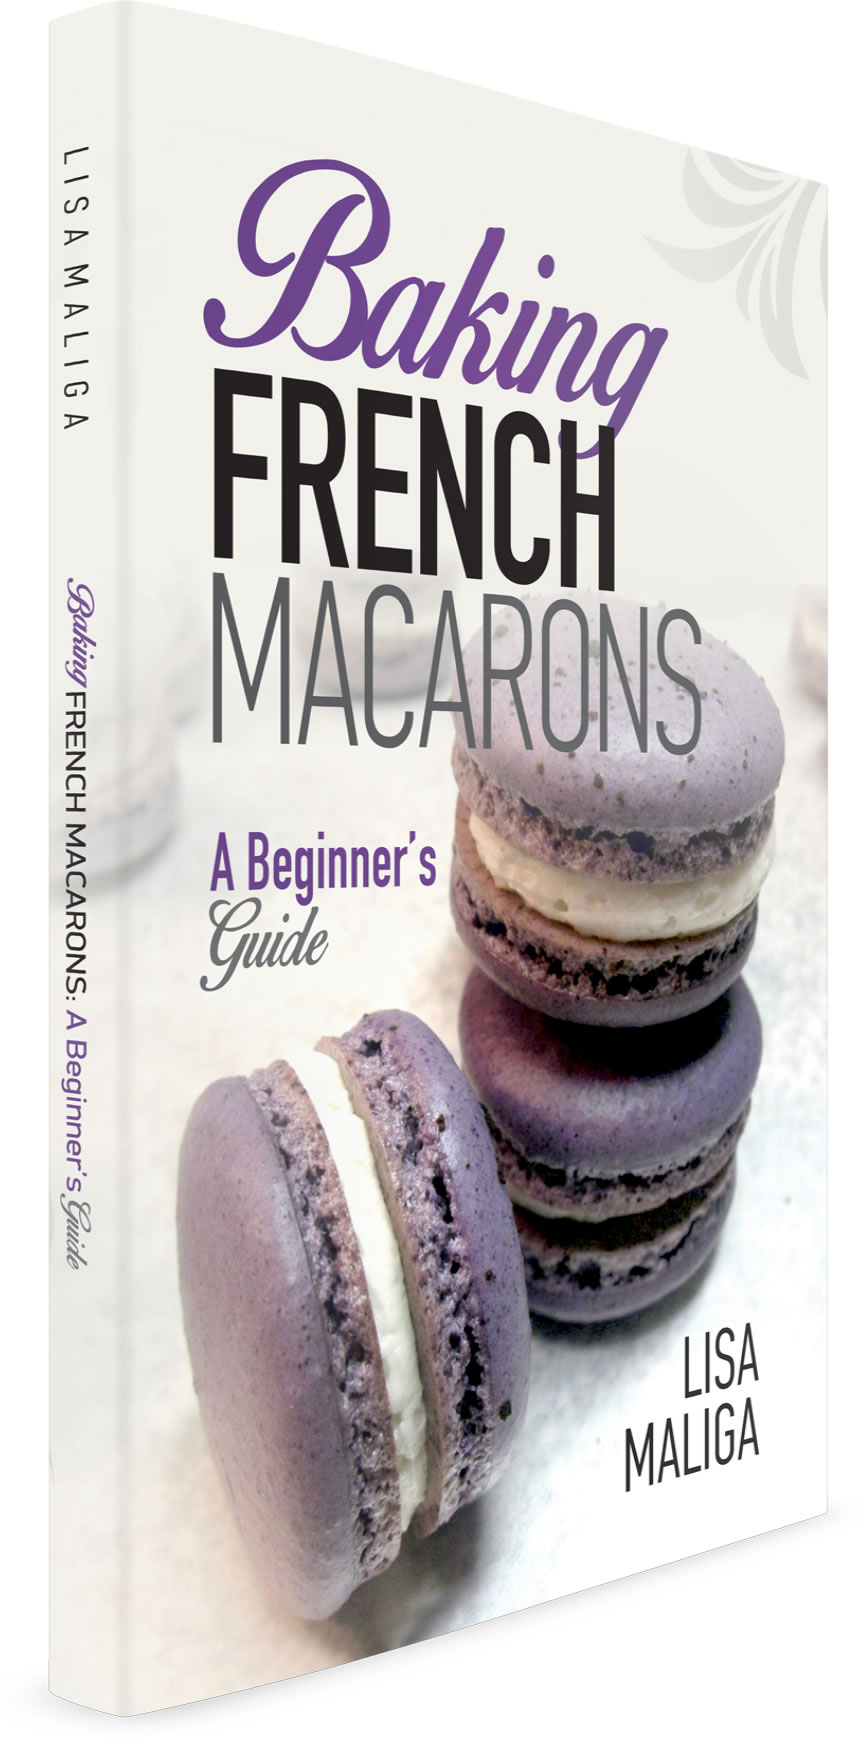 Baking_French_Macarons_A_Beginners_Guide_3da